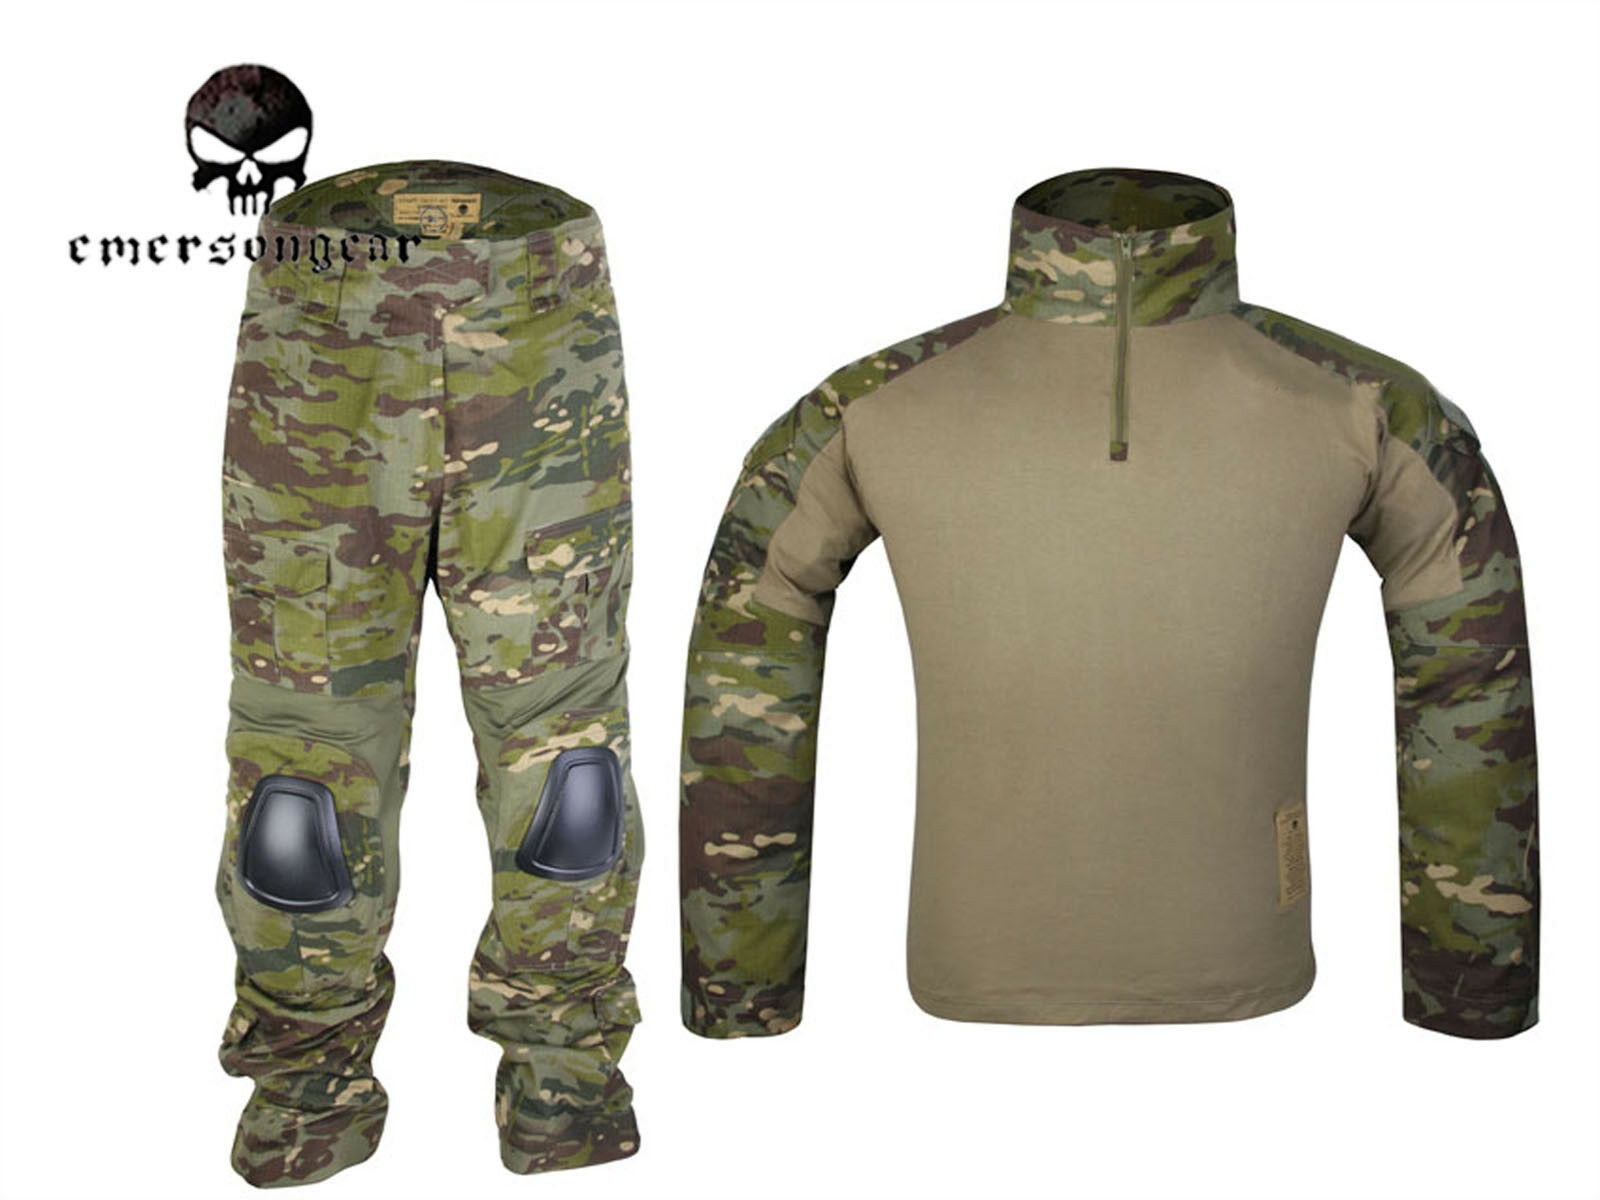 EMERSON Gen2 Cype Style Combat Uniform Tactical Hunting  BDU Multicam Tropic  online shopping and fashion store